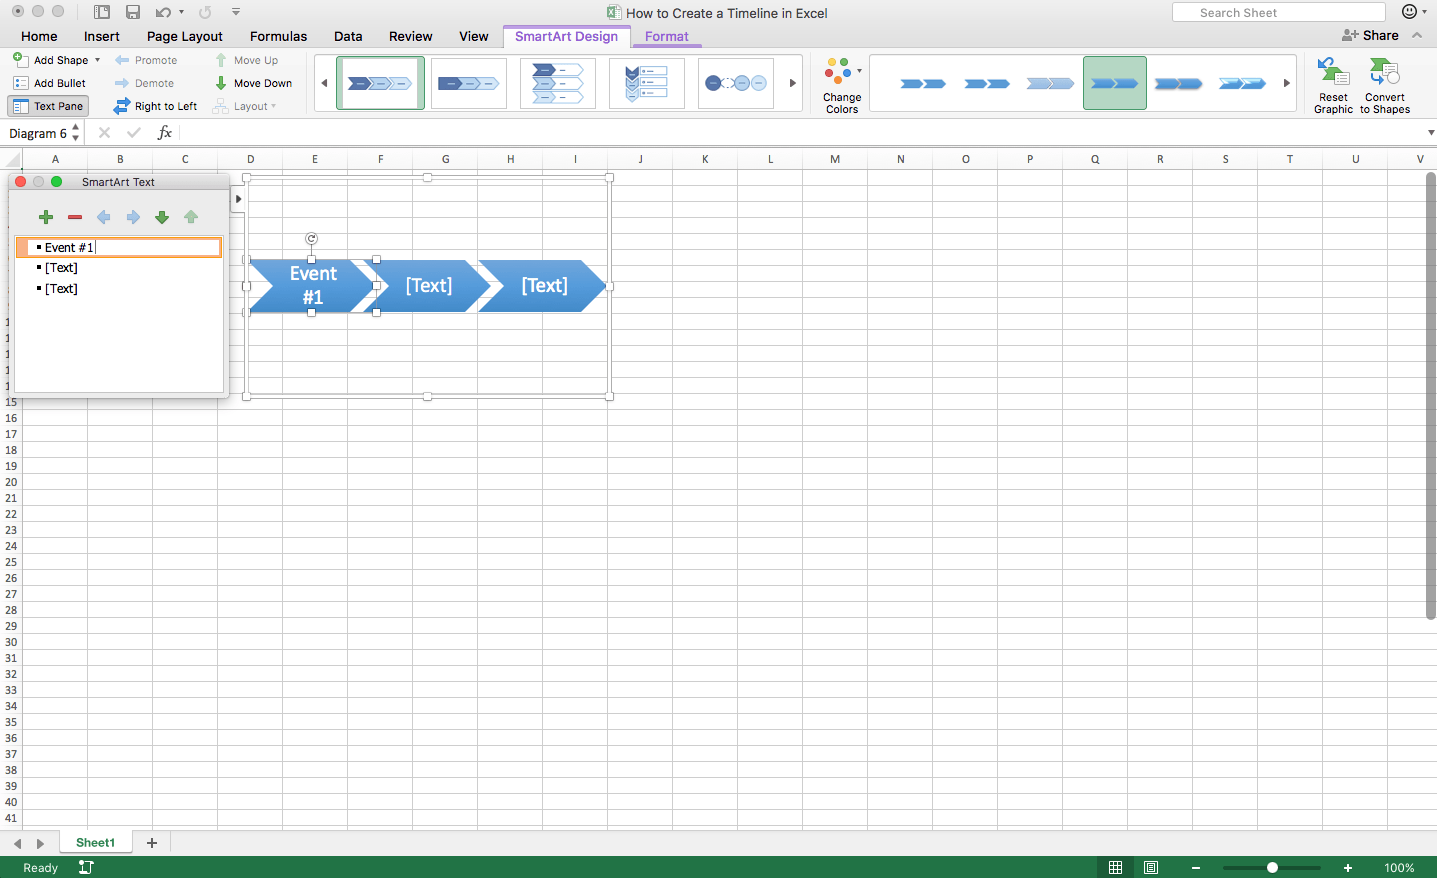 How To Create A Timeline In Excel Template TeamGantt - Timeline template excel